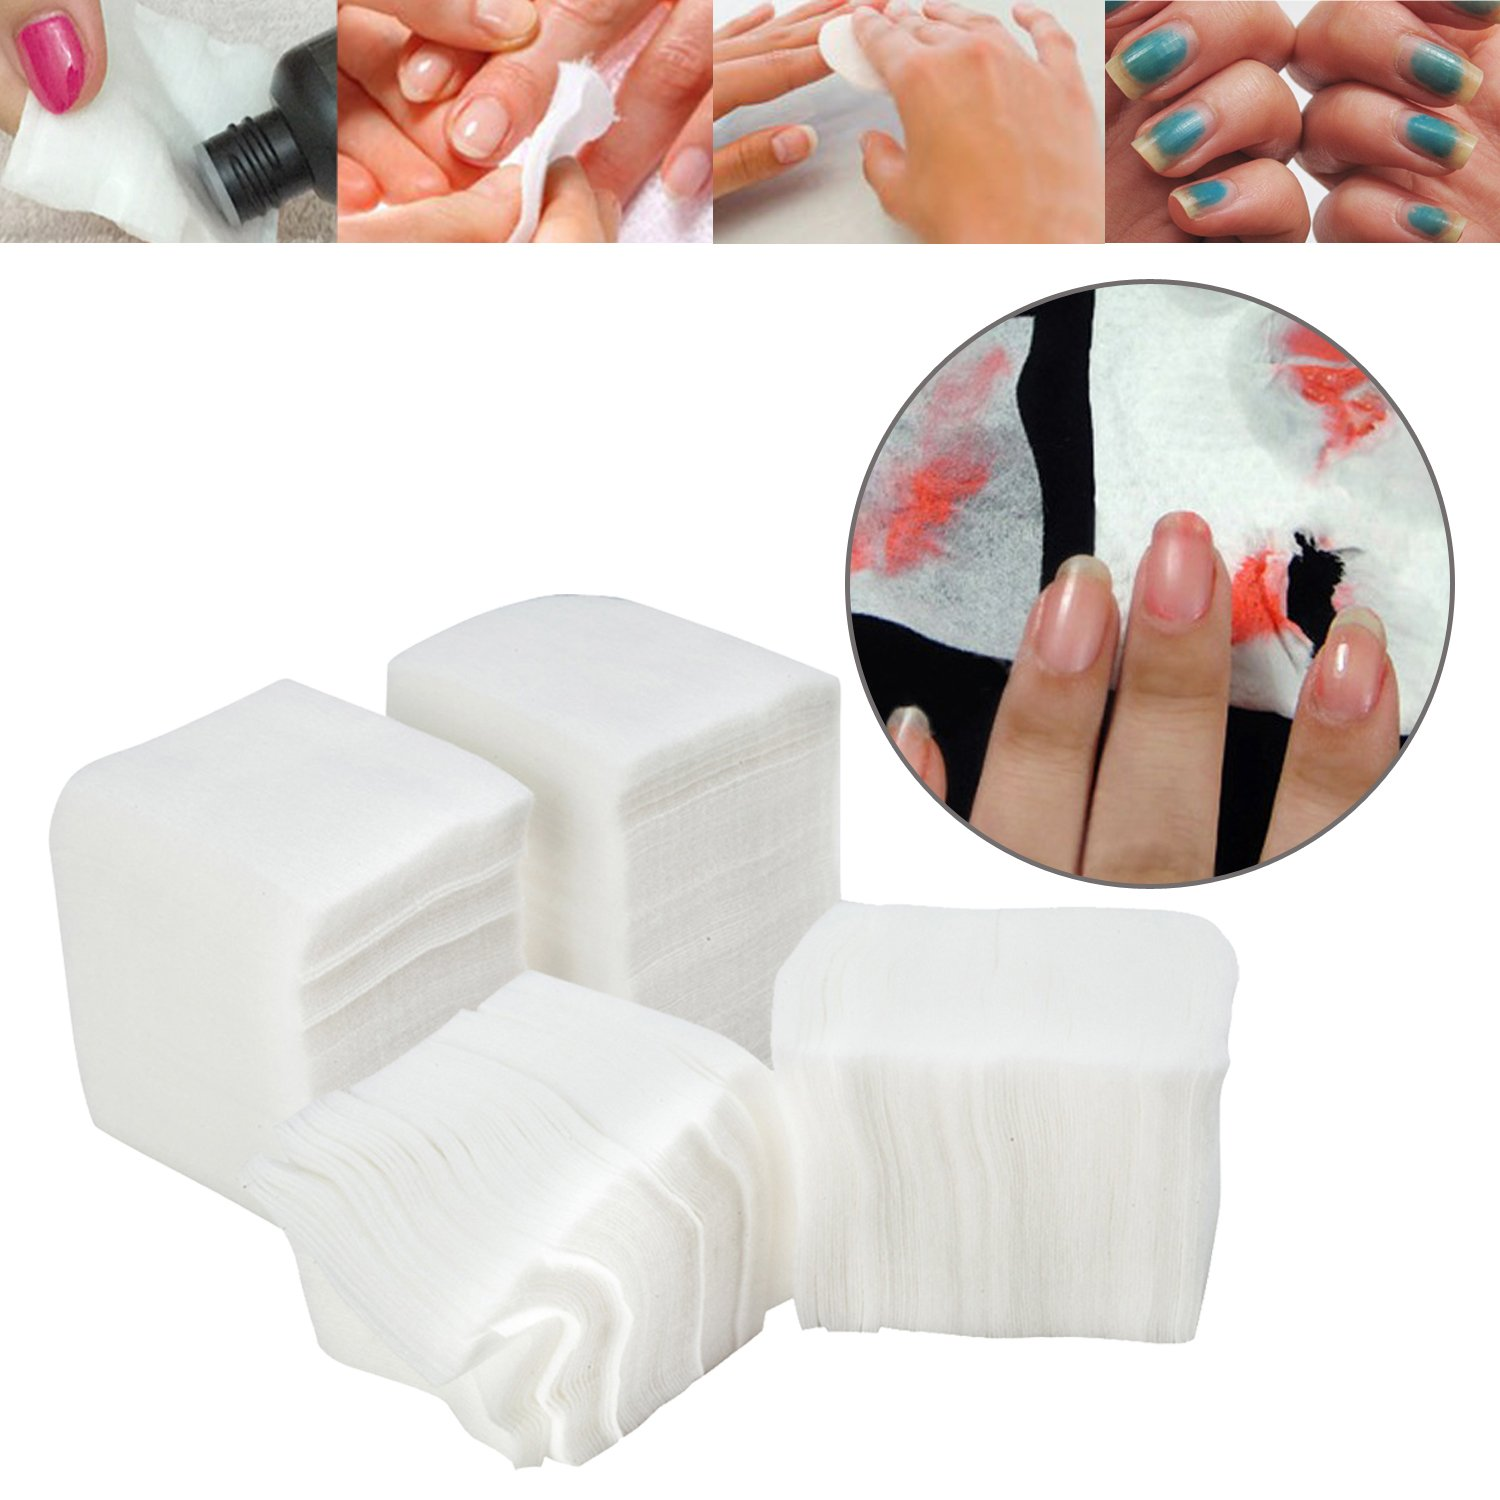 High Quality Set Kit With 3 Packs of 400pcs Each Professional Manicure Pedicure Make Up Soft Lint Free White Cotton Pads By VAGA©